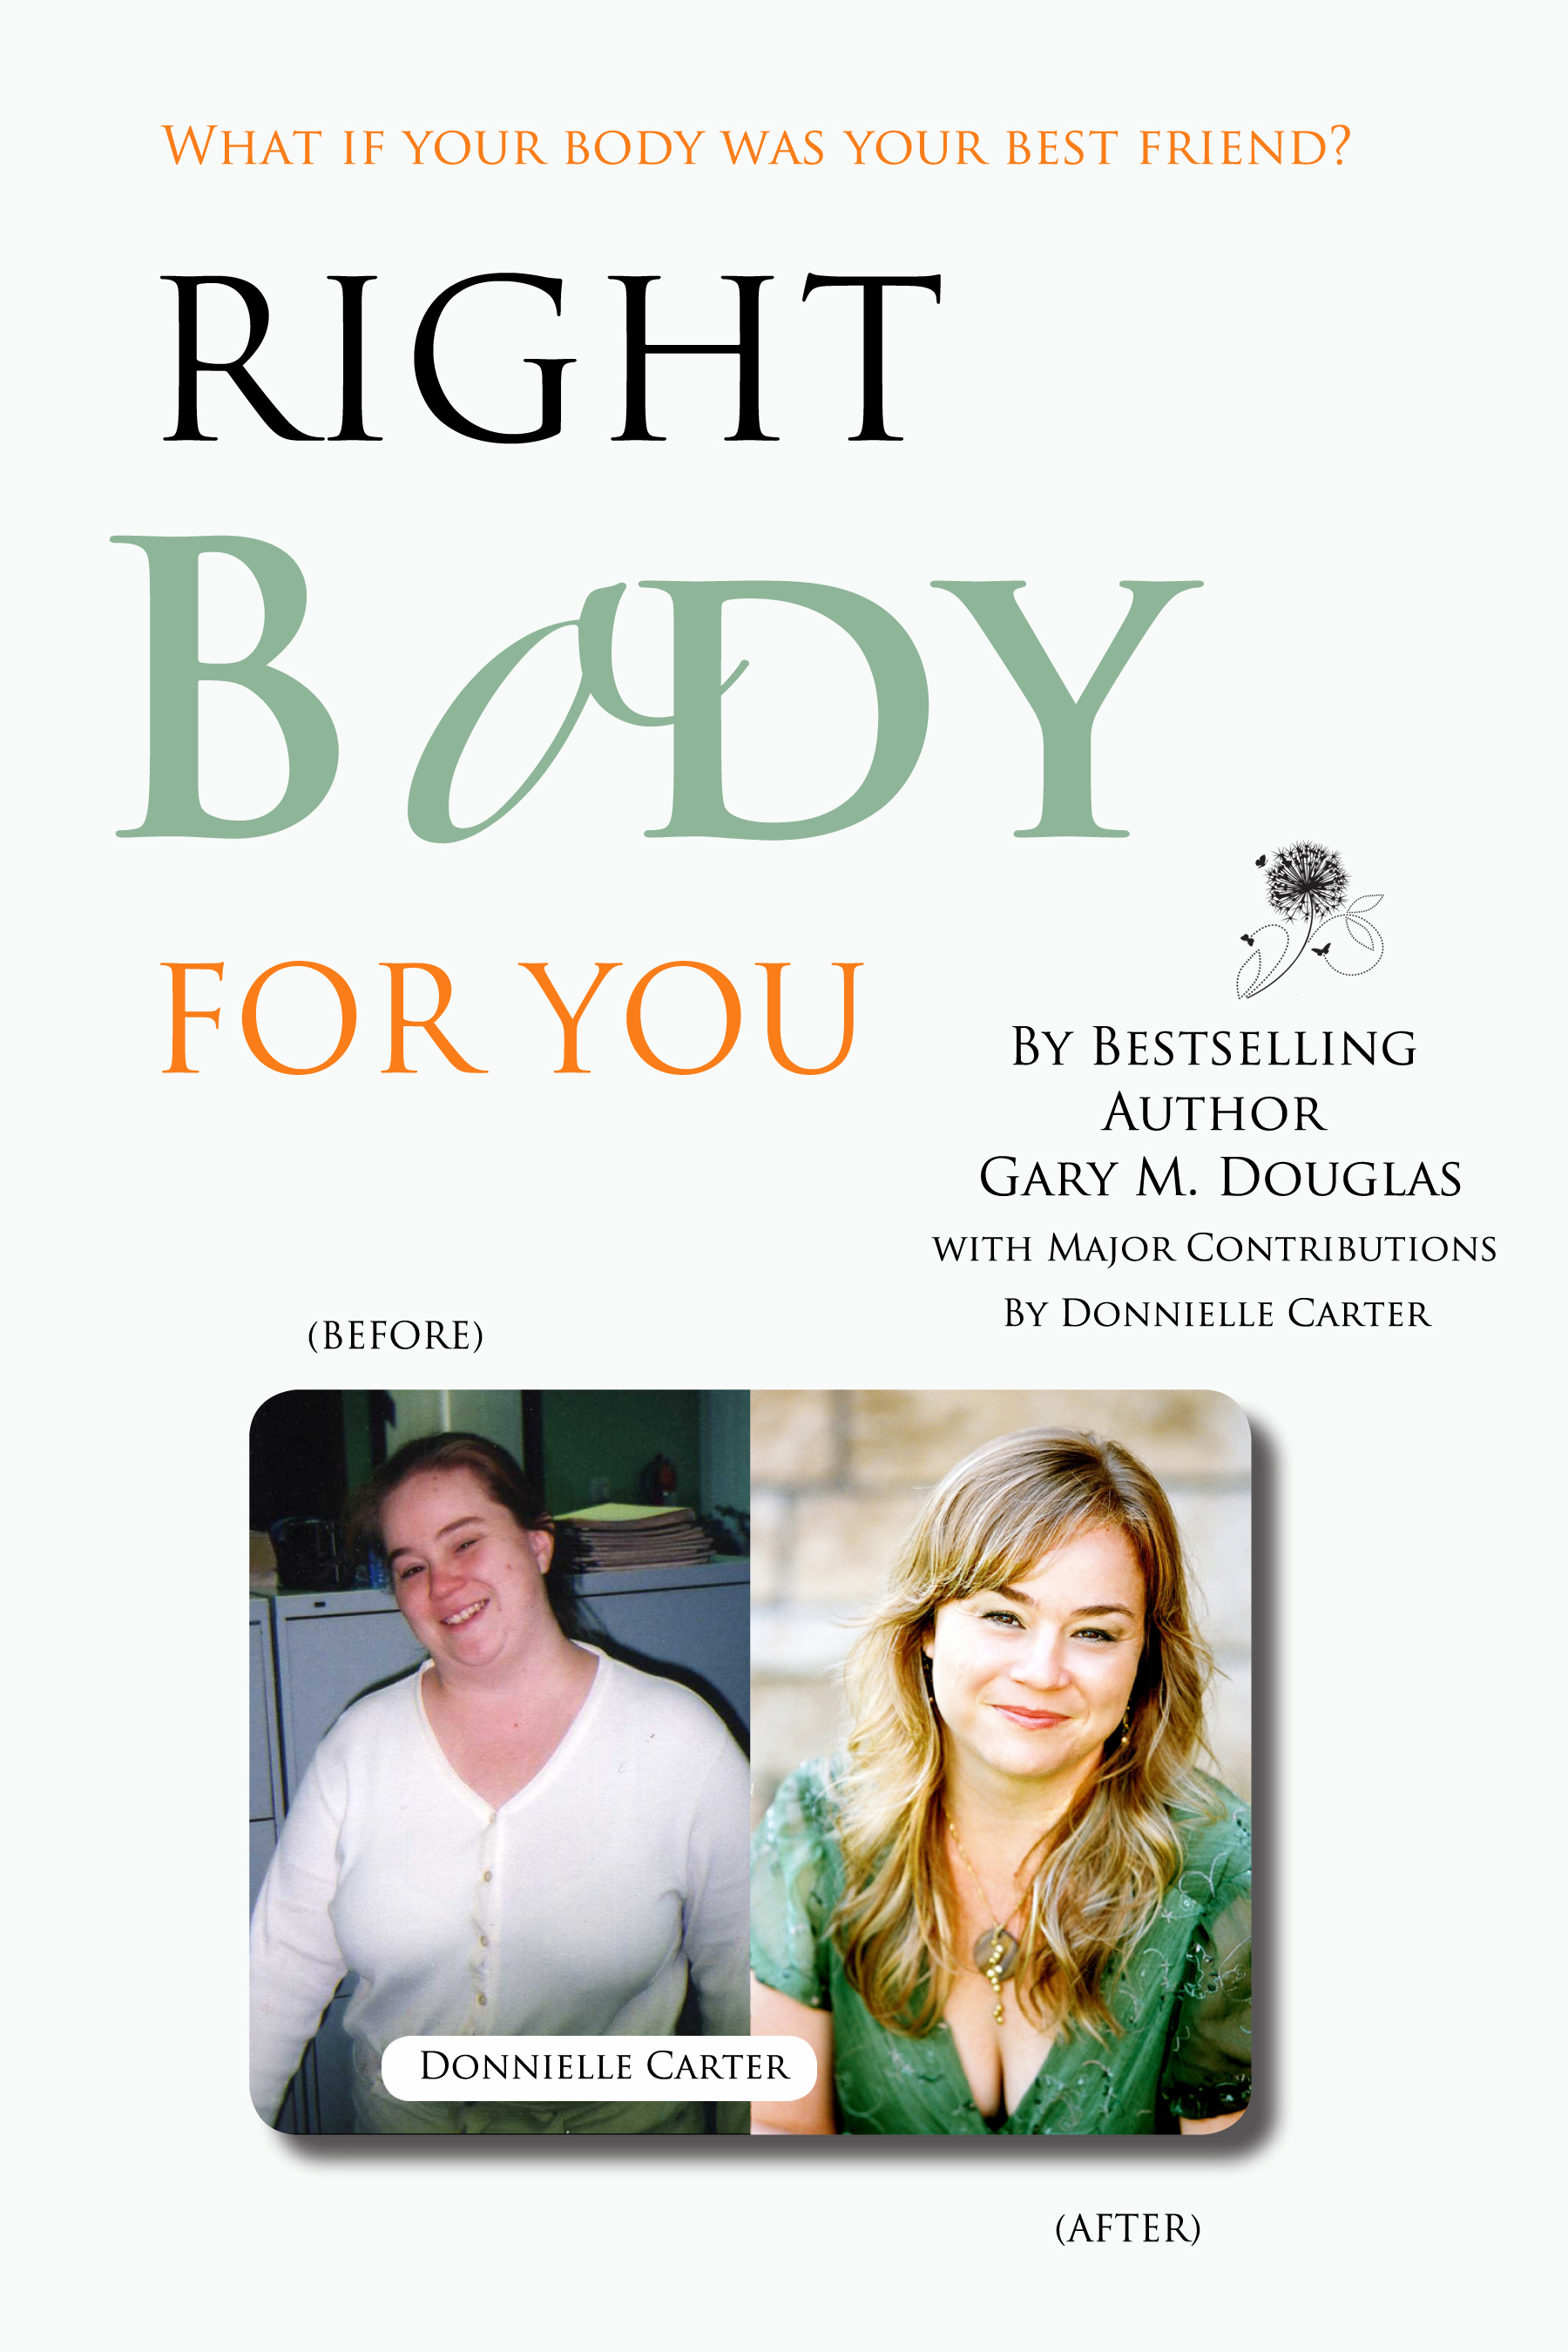 Right Body For You - BOOK